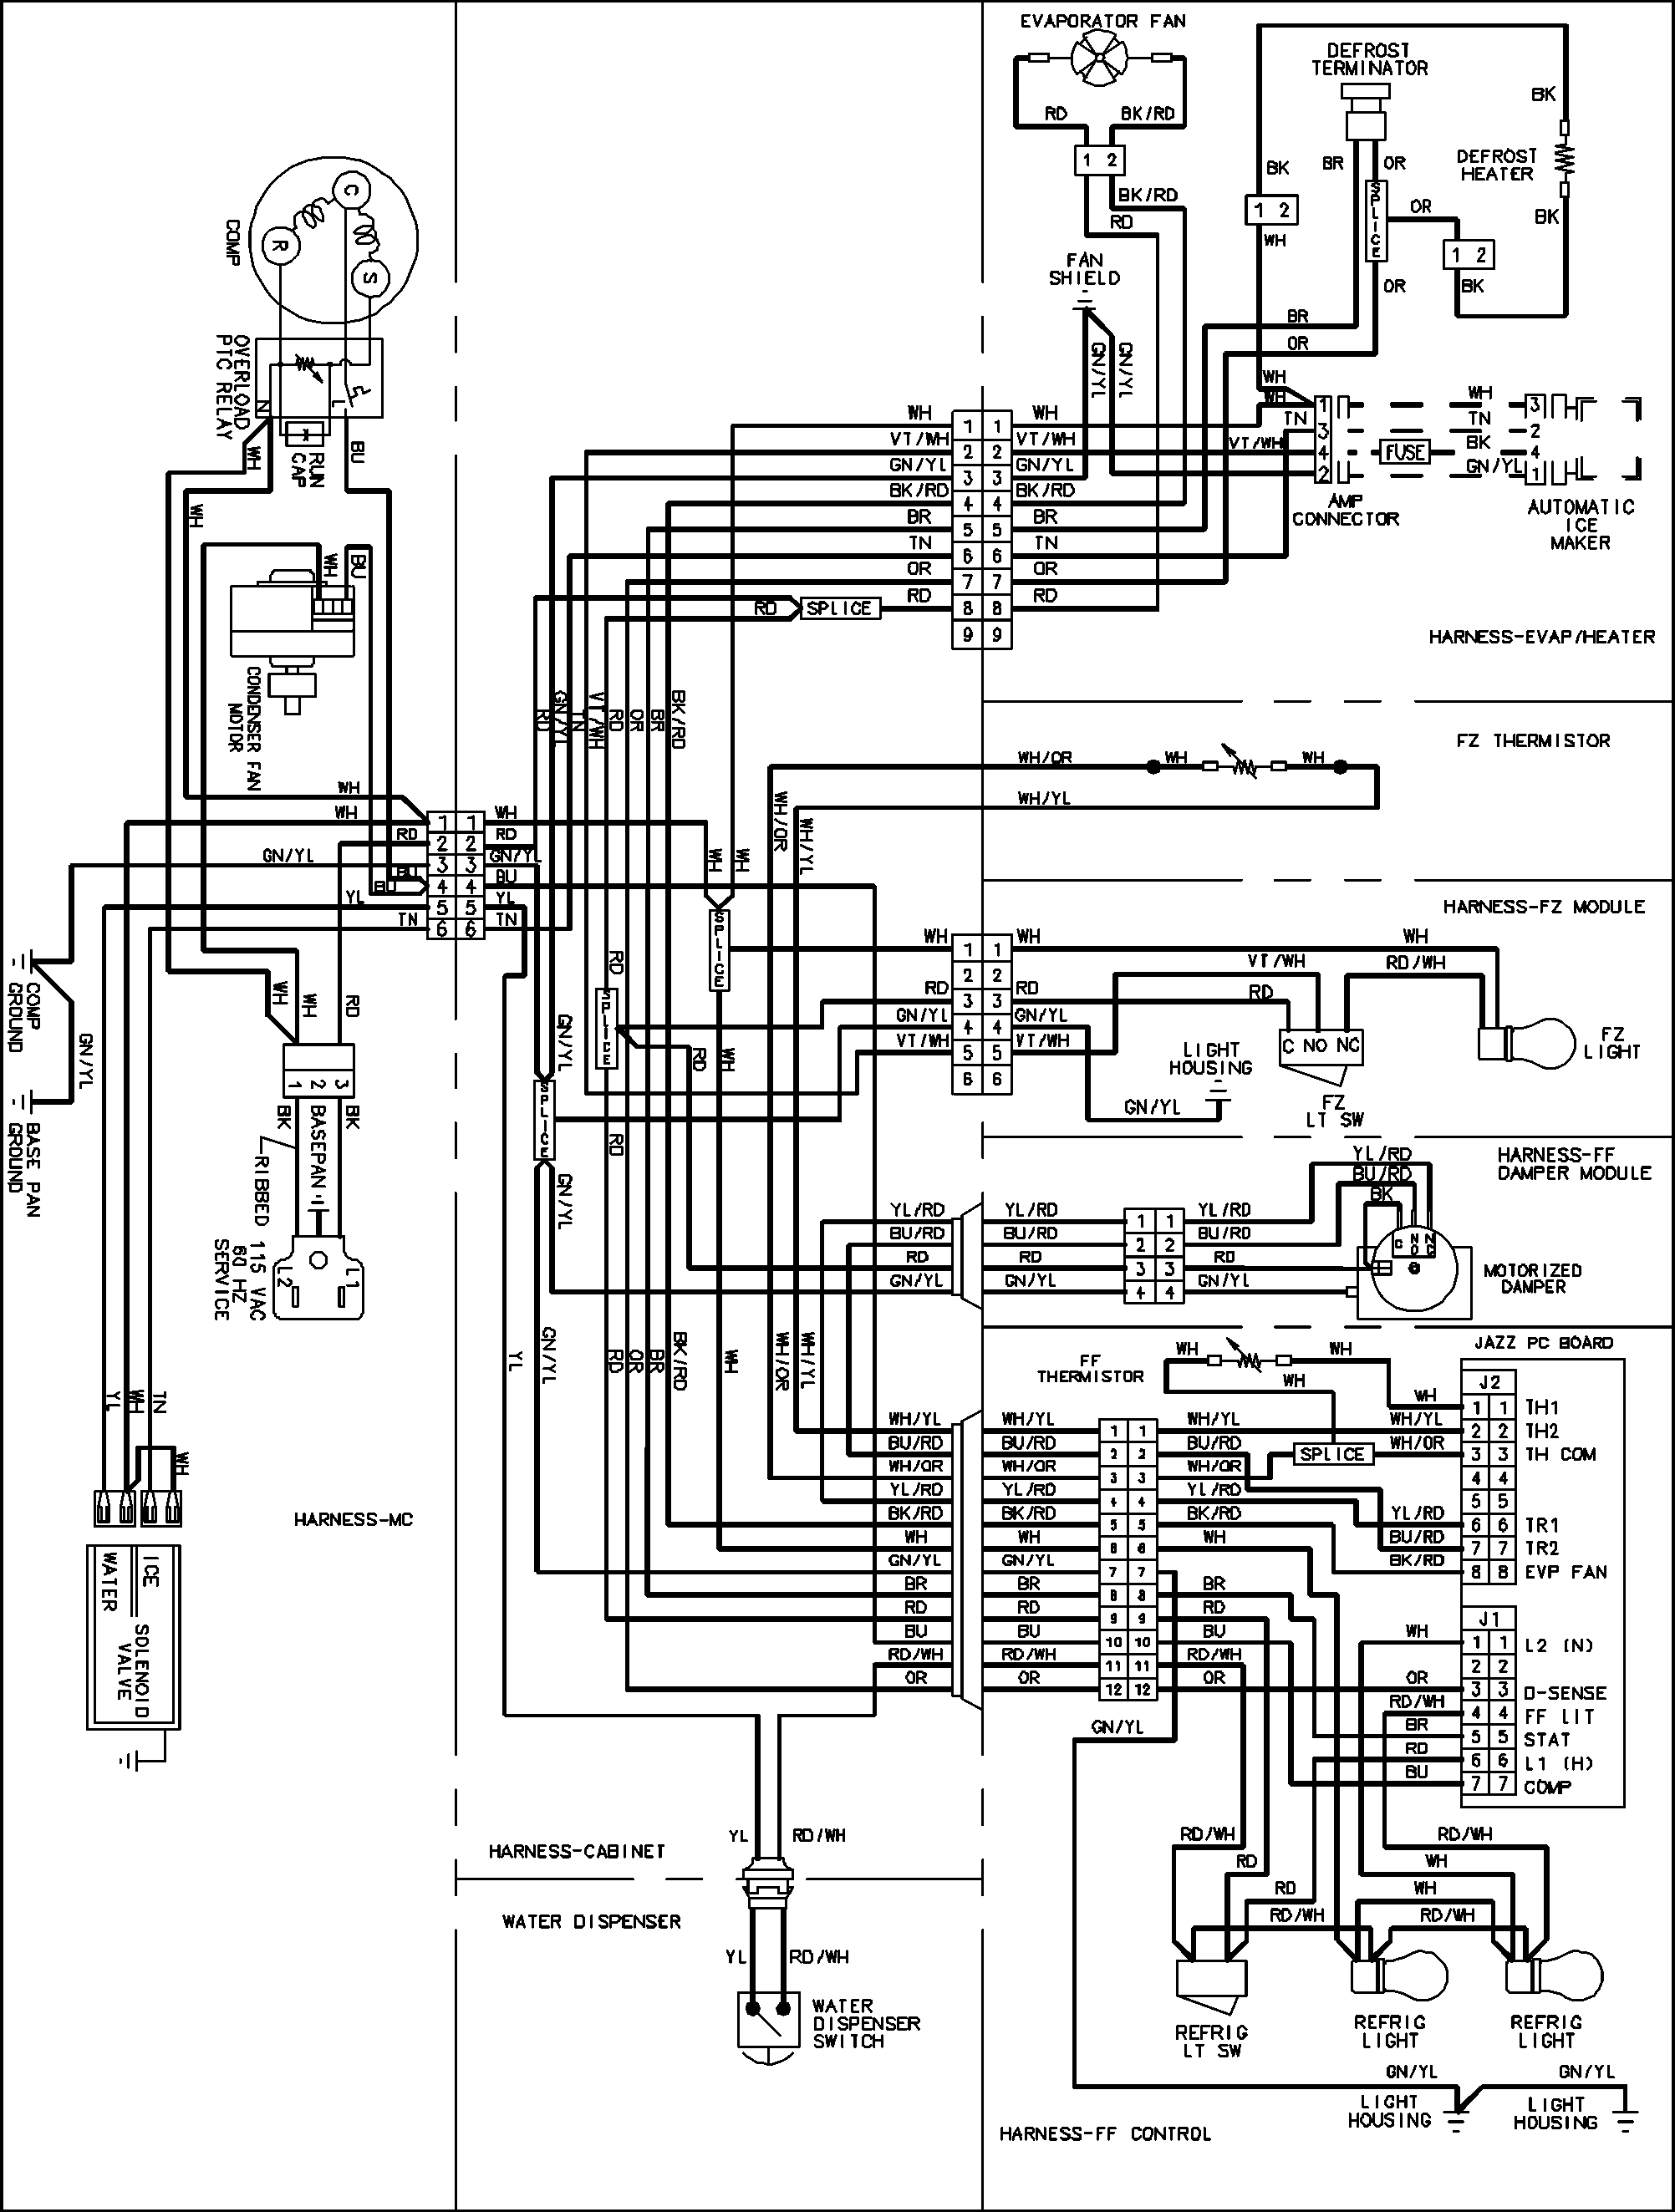 frigidaire refrigerator wiring diagram Collection-Frigidaire Freezer Wiring Diagram Fresh Amana Refrigerator Parts Model Abc2037dps 5-i